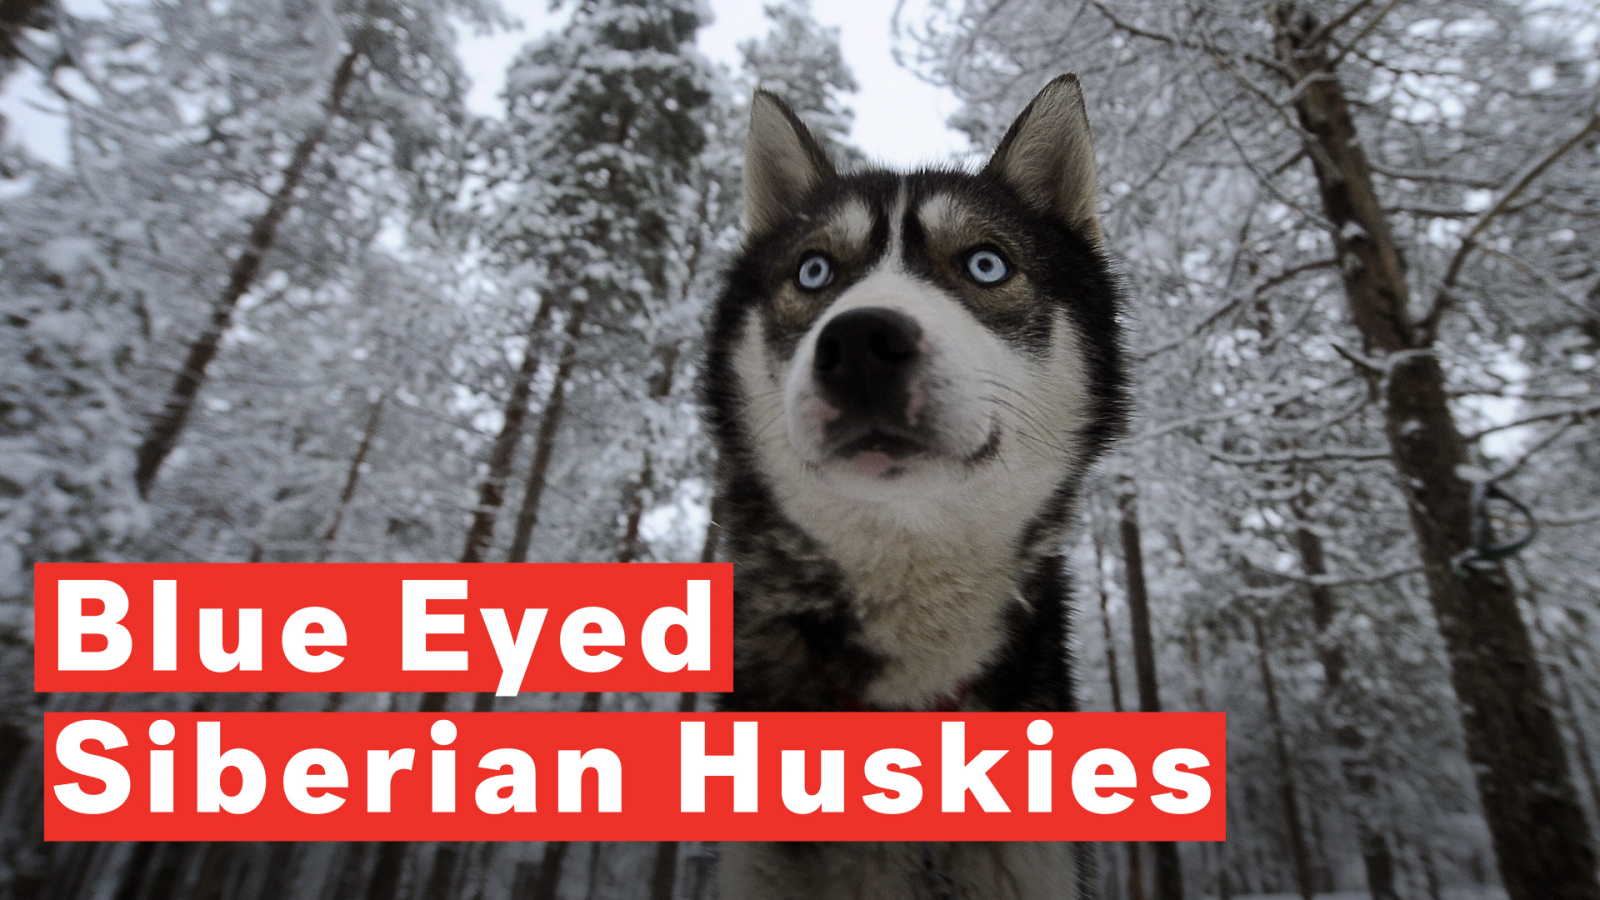 12 Dog Breeds With Striking Blue Eyes From Huskies To Great Danes